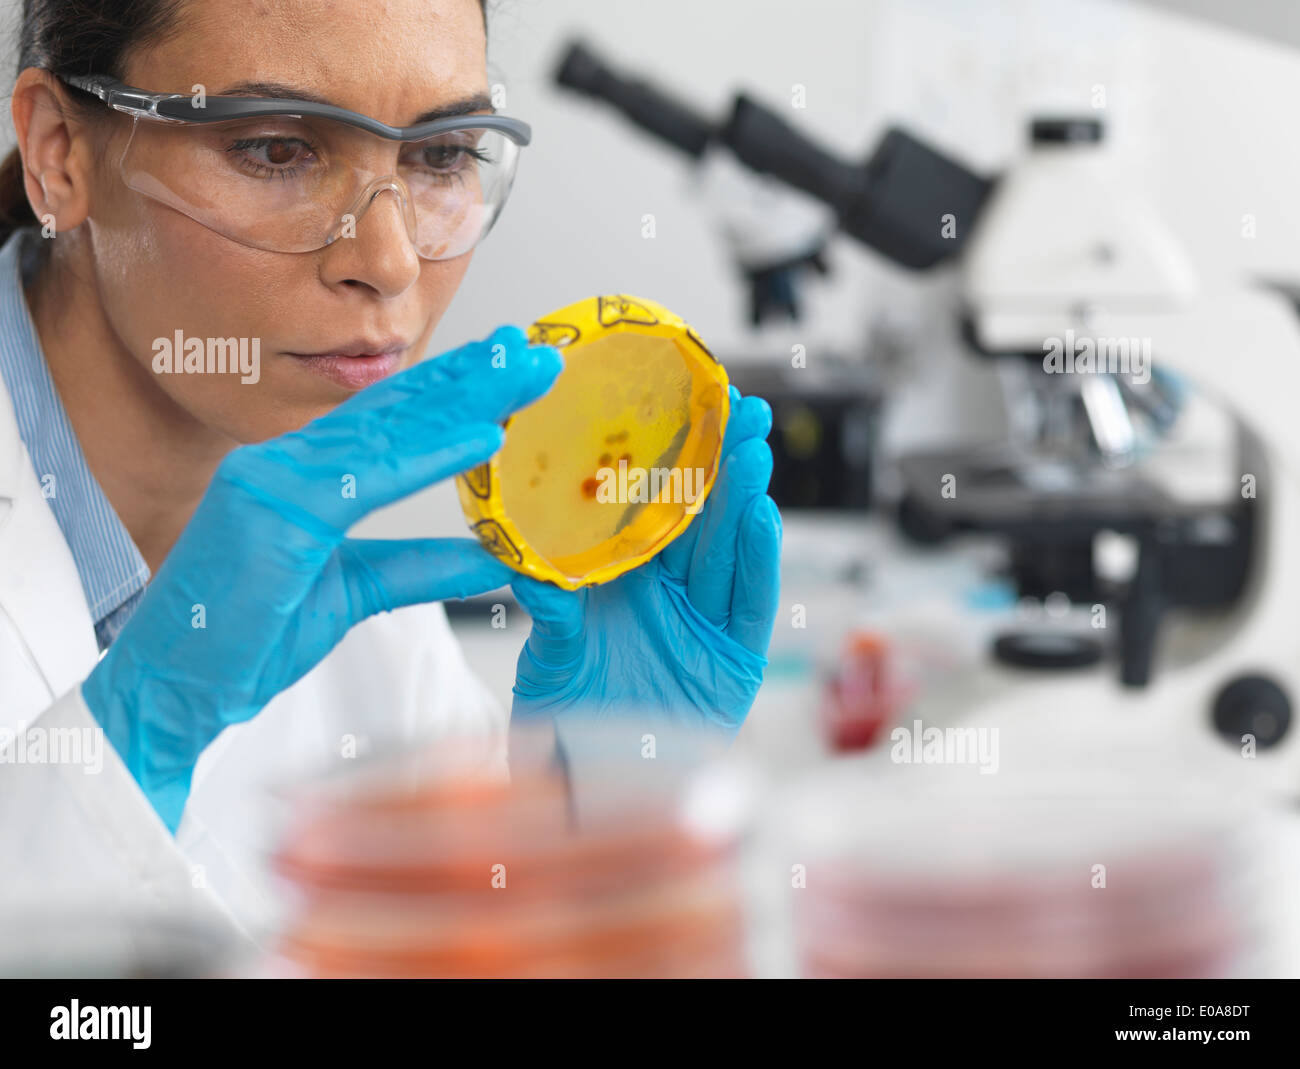 Scientist viewing cultures growing in petri dishes with a biohazard tape on in a microbiology lab - Stock Image